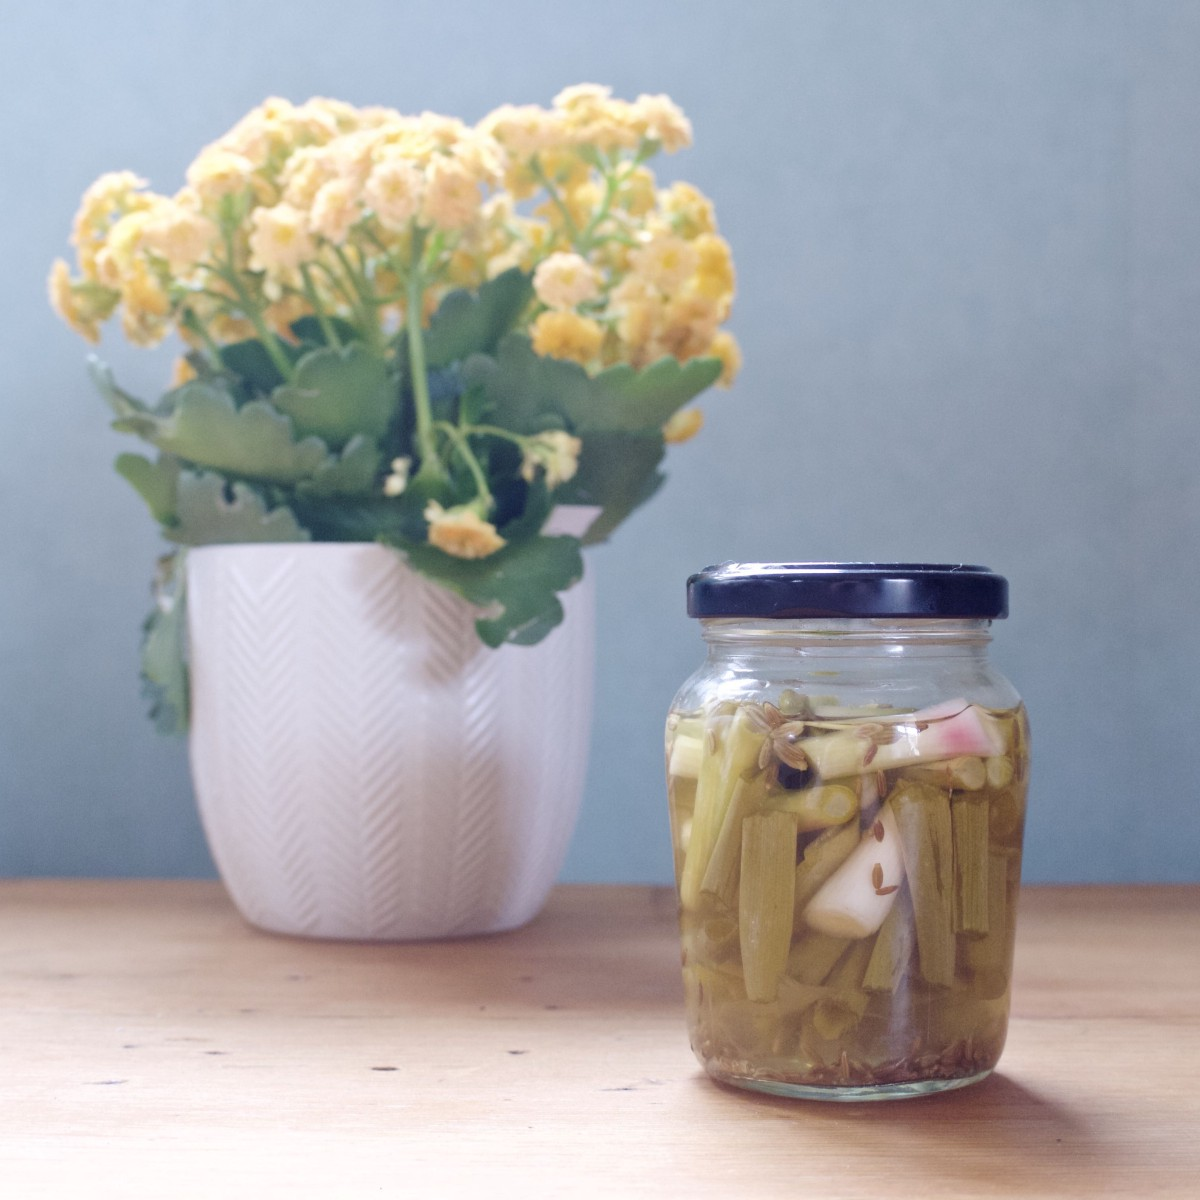 How to Make Quick-Pickled Scallions